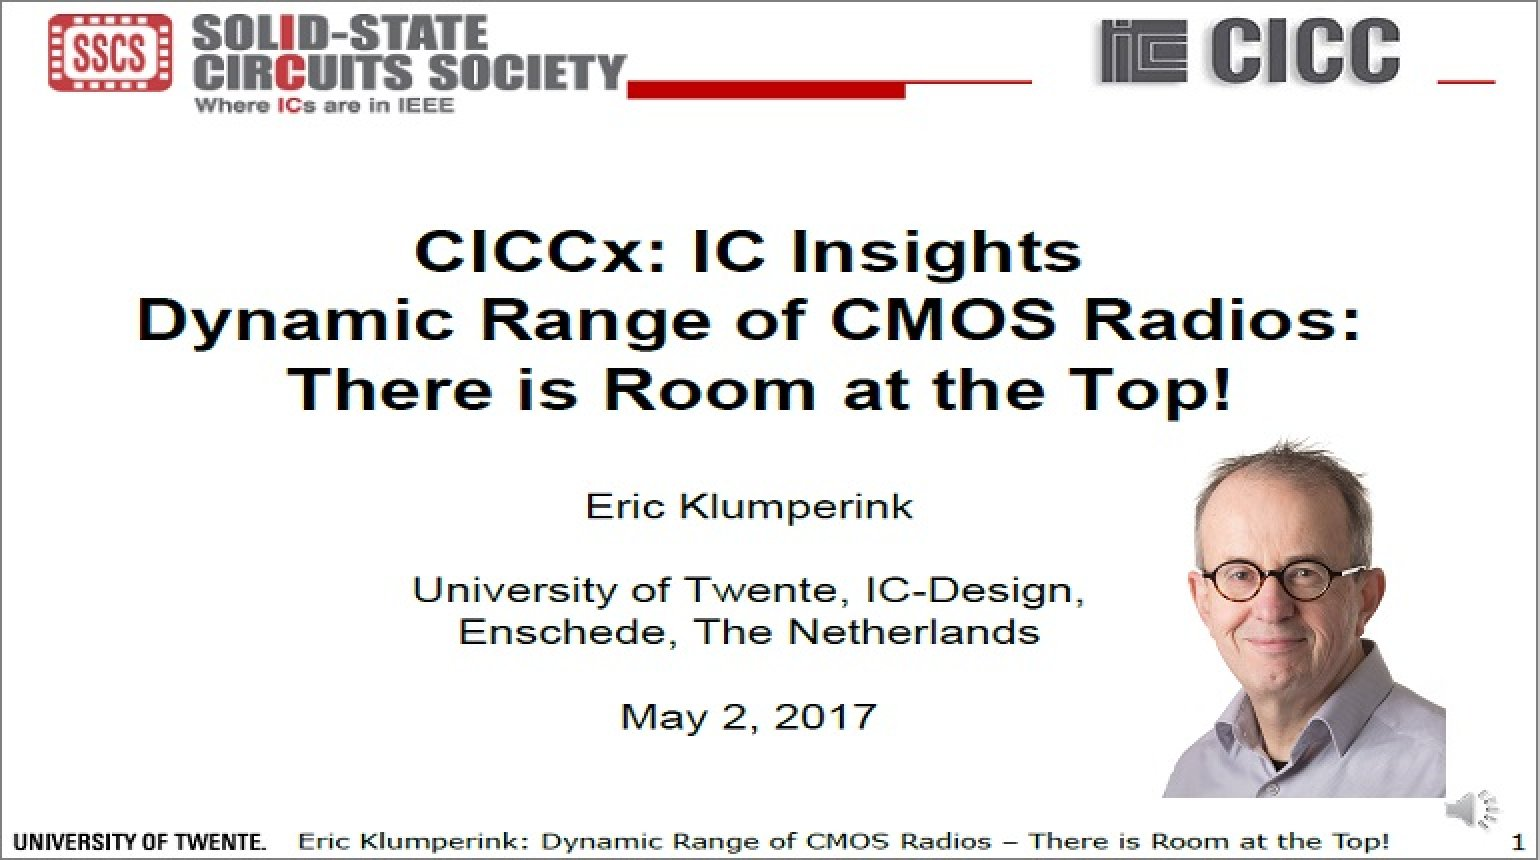 Dynamic Range of CMOS Radios: There is Room at the Top! Video